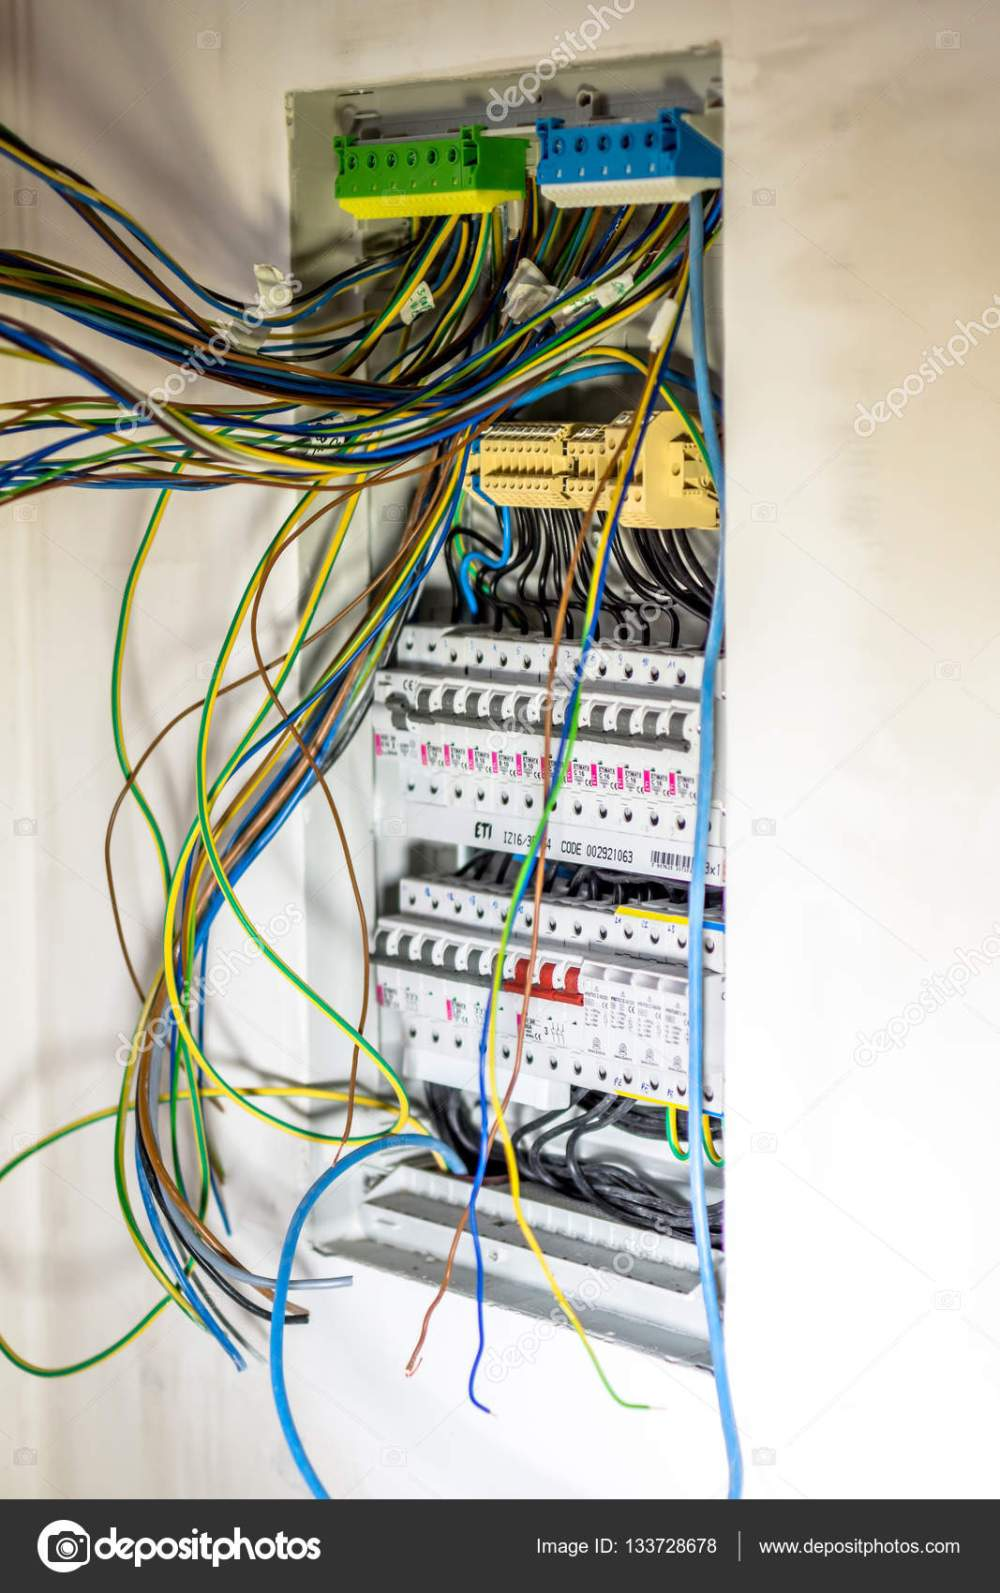 medium resolution of automatic fuse switches circuit breaker and wiring terminal in cabinet photo by fotovincek